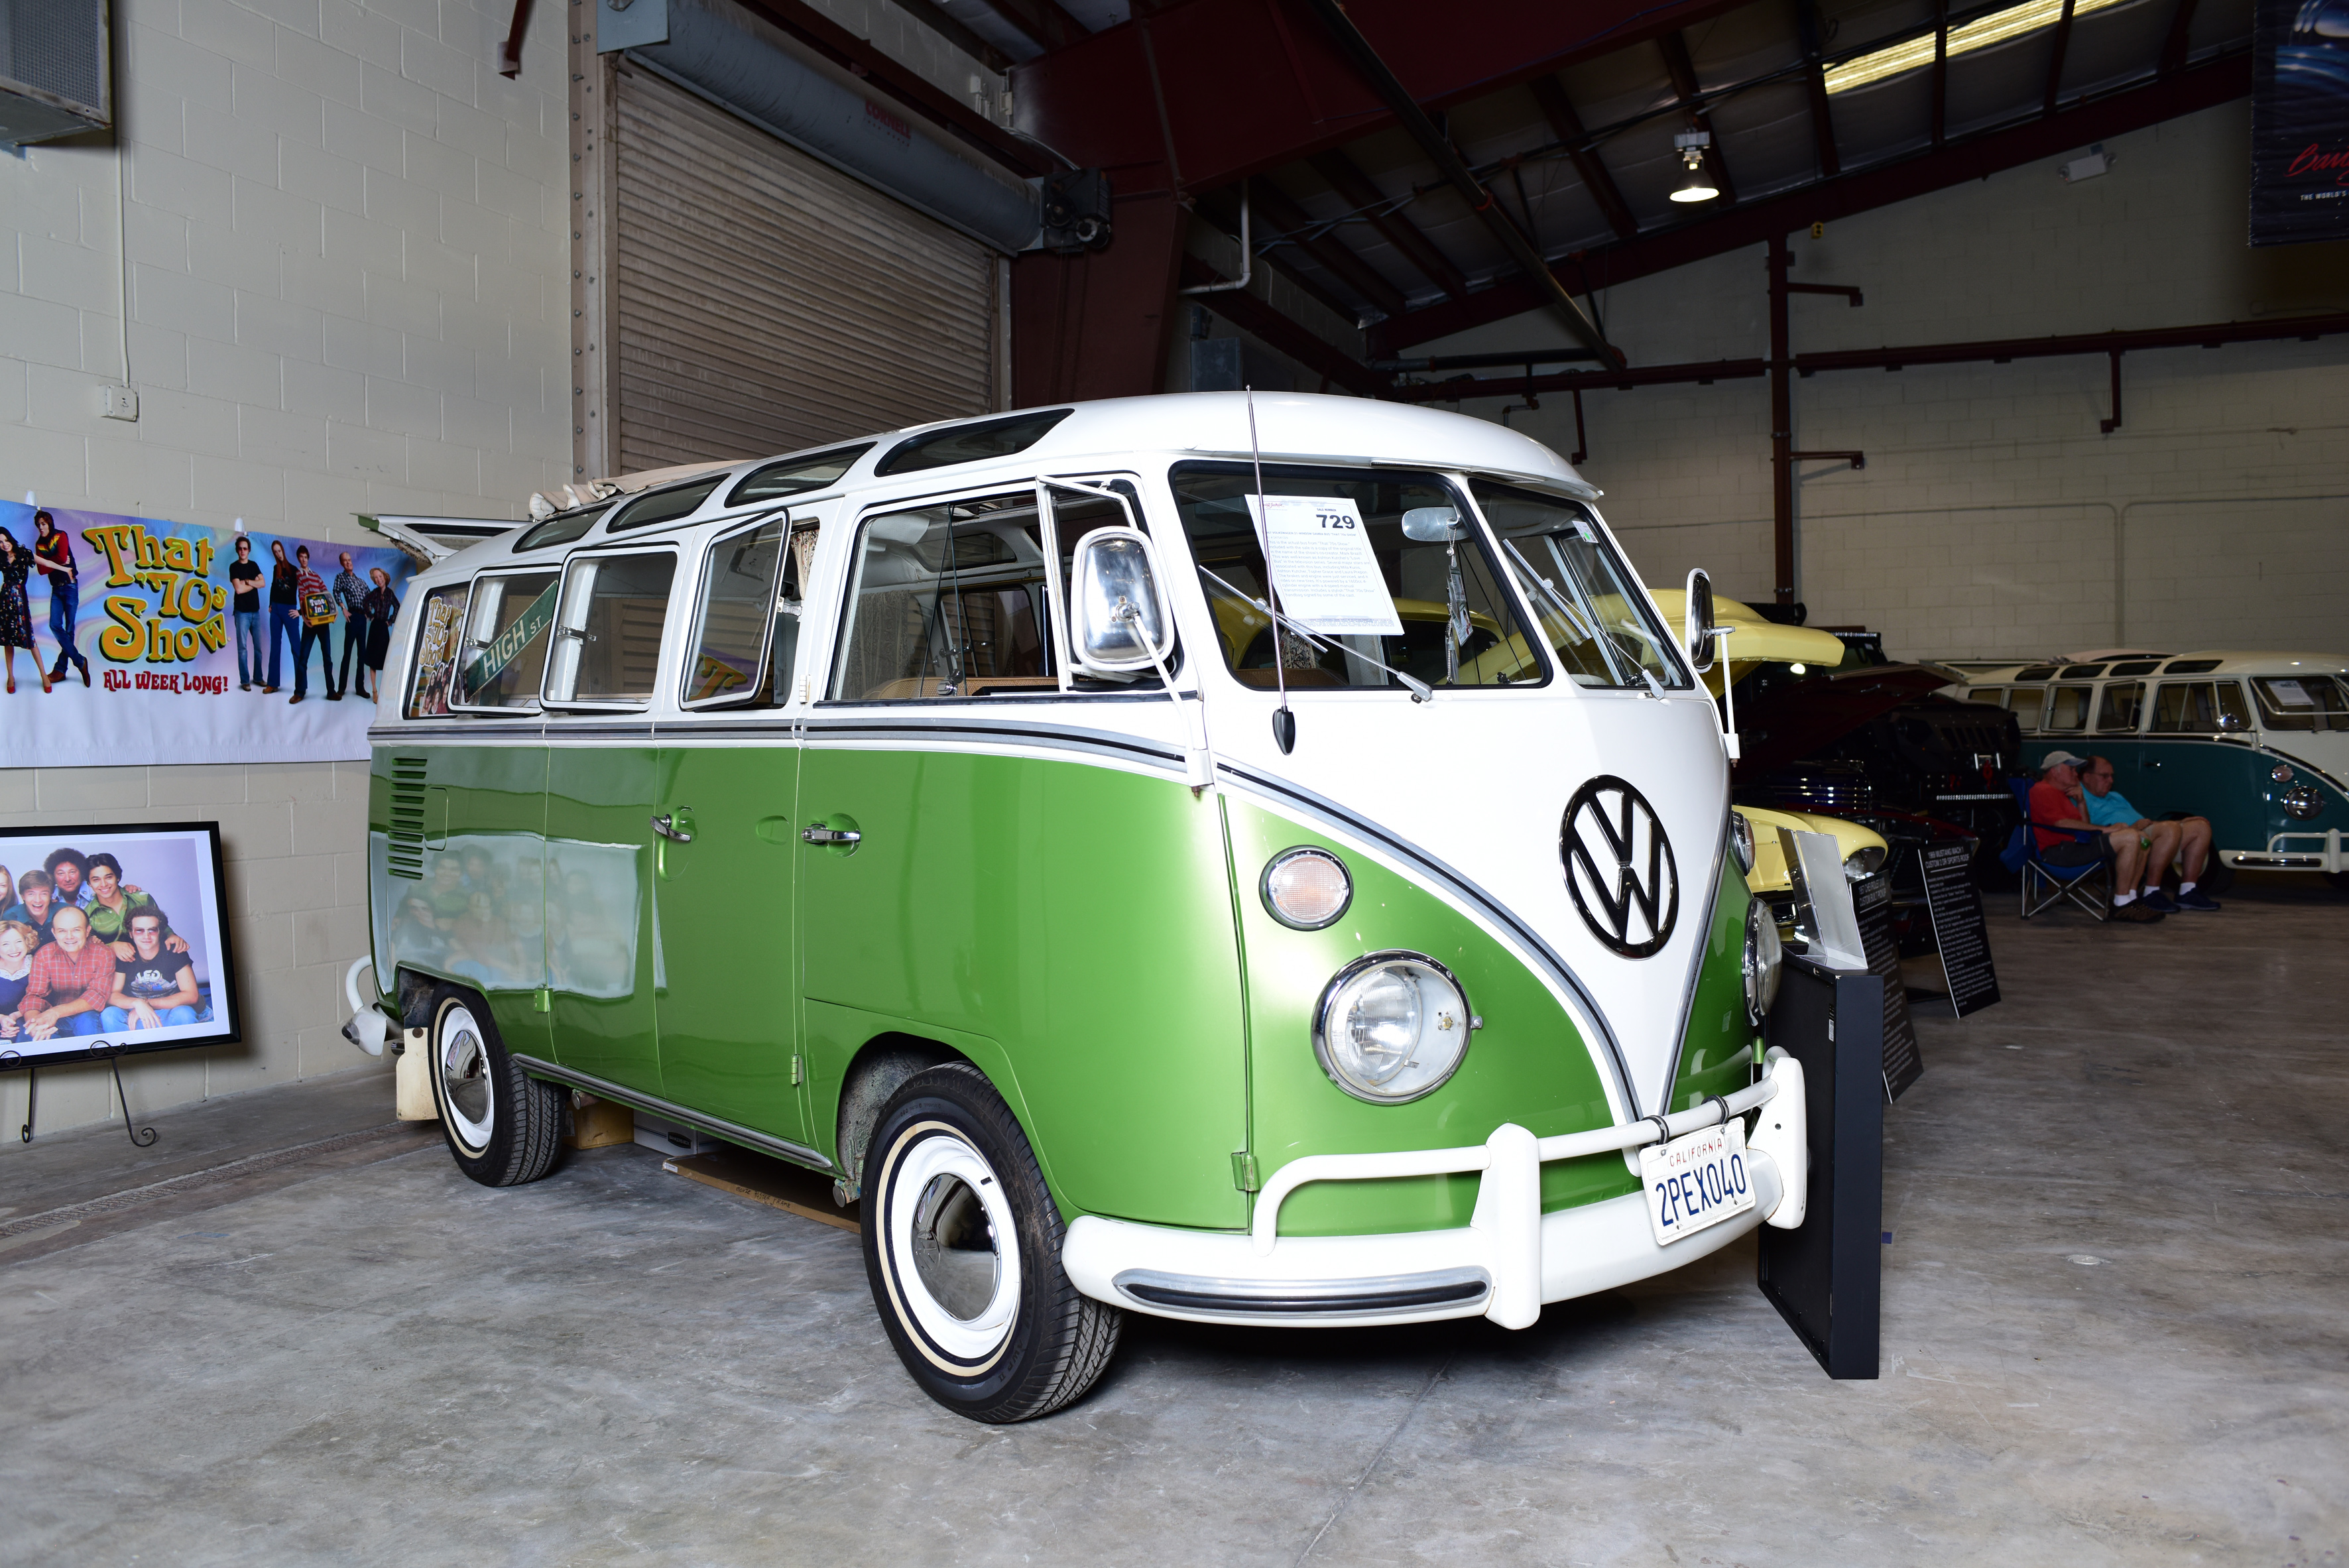 1e18f4ce62 Rare  love wagon  camper van from tv hit  That 70 s Show  could break world  record for most expensive Volkswagen ever sold! - Caters News Agency